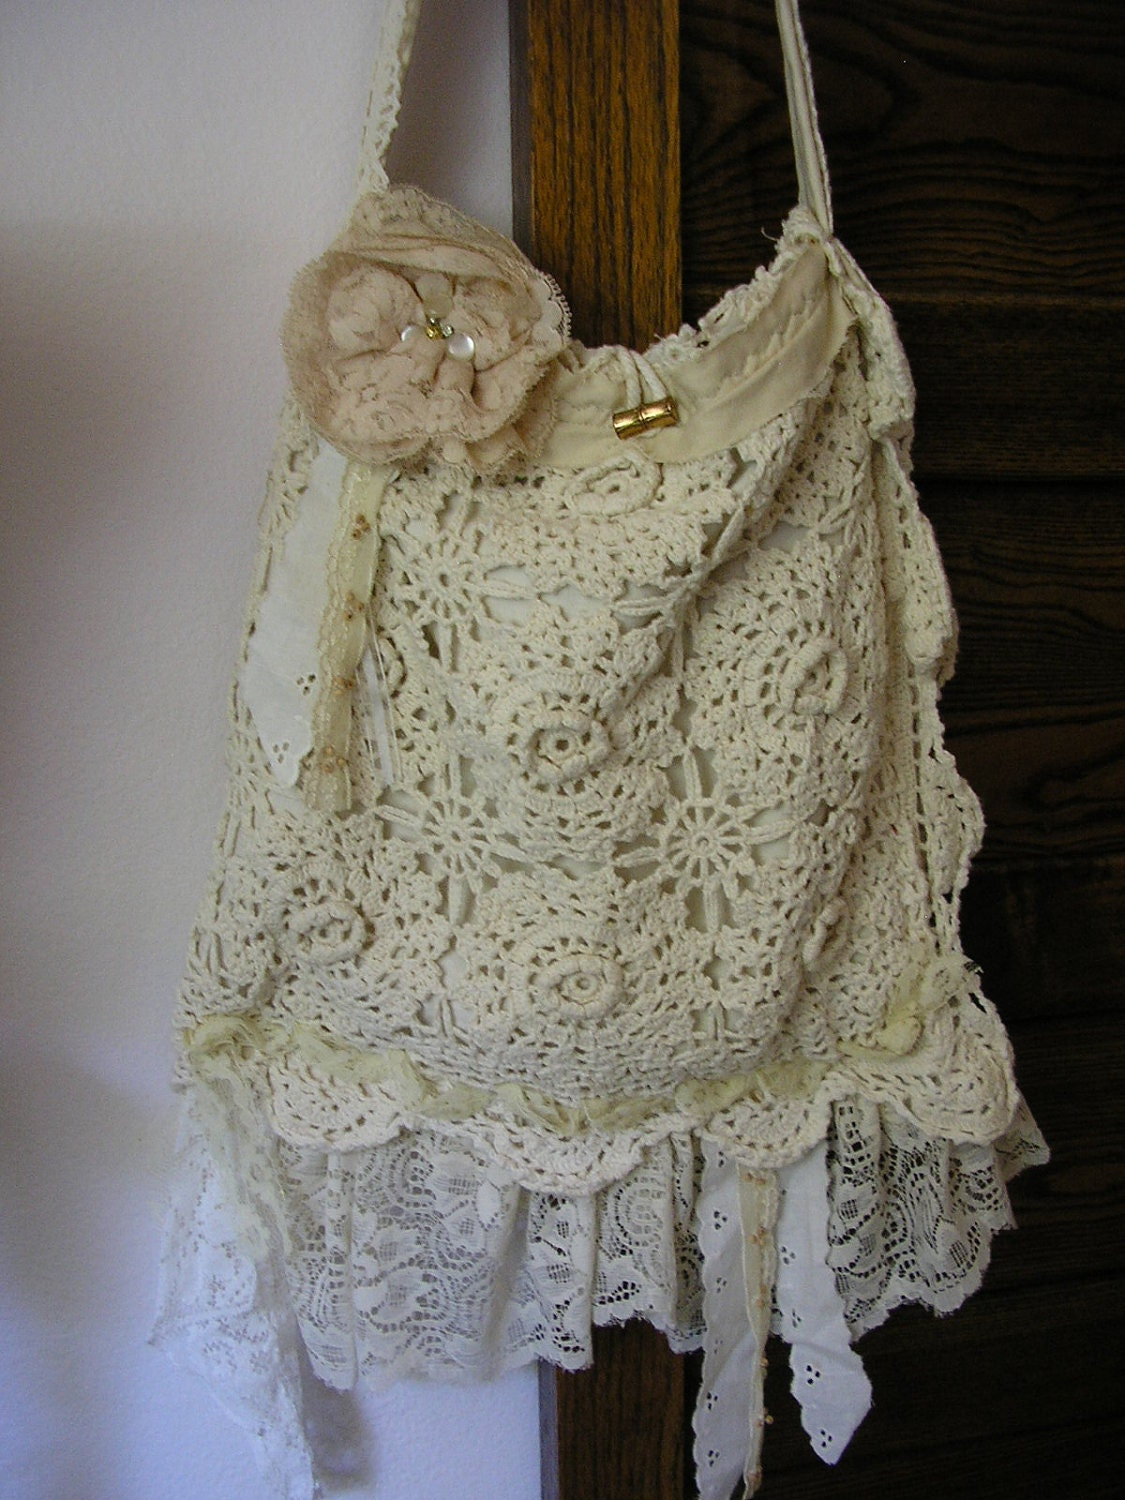 Cotton Crochet Purse Shabby Chic Tattered Vintage Lace